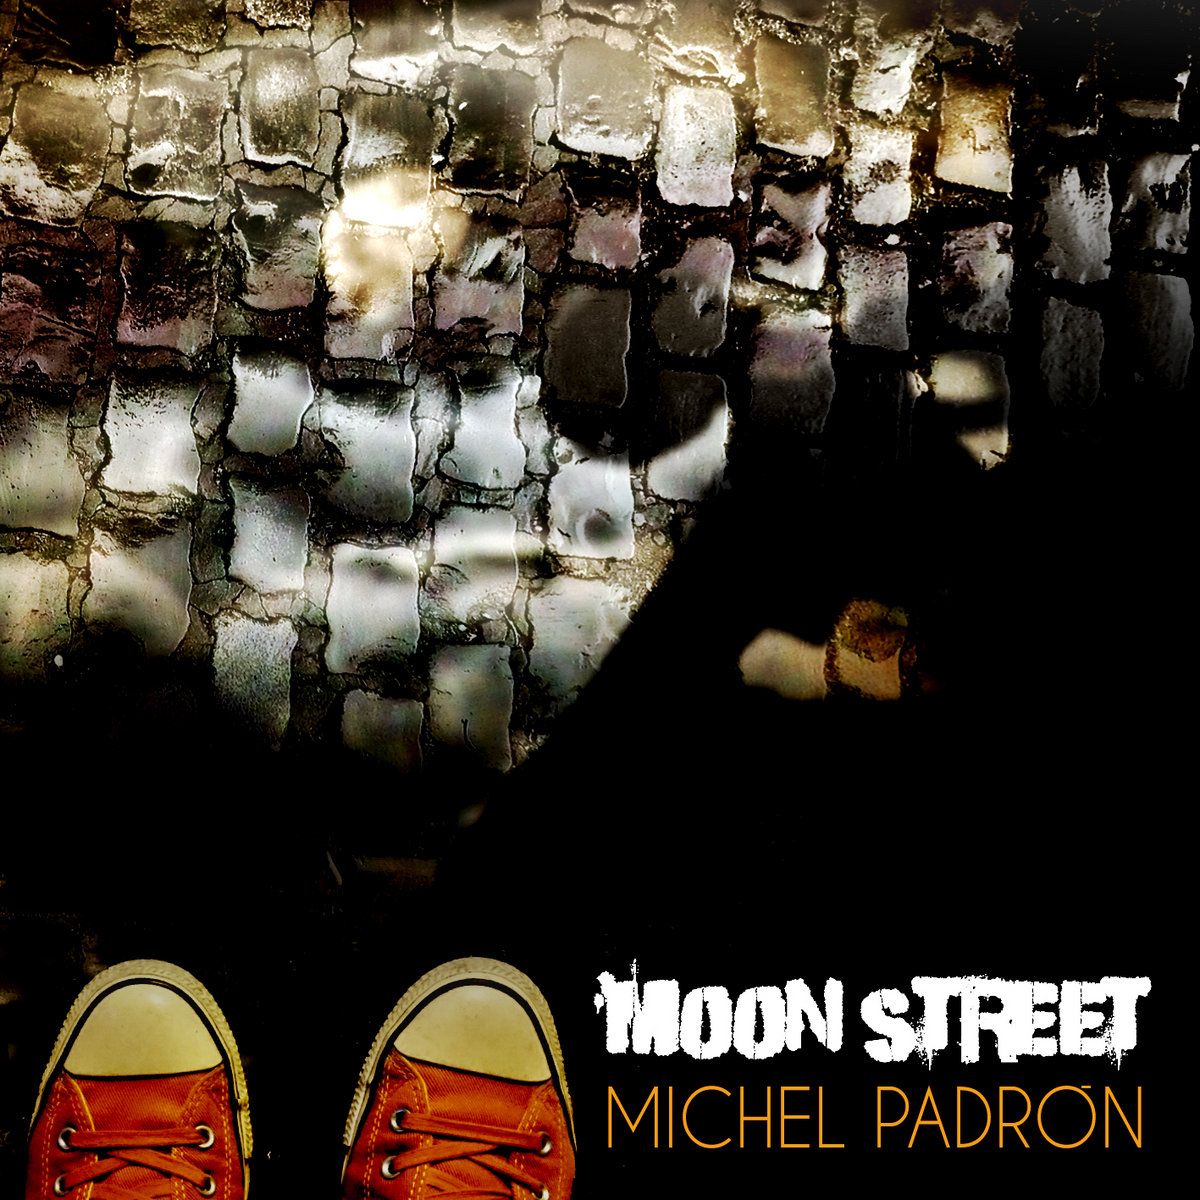 MOON STREET by MICHEL PADRON